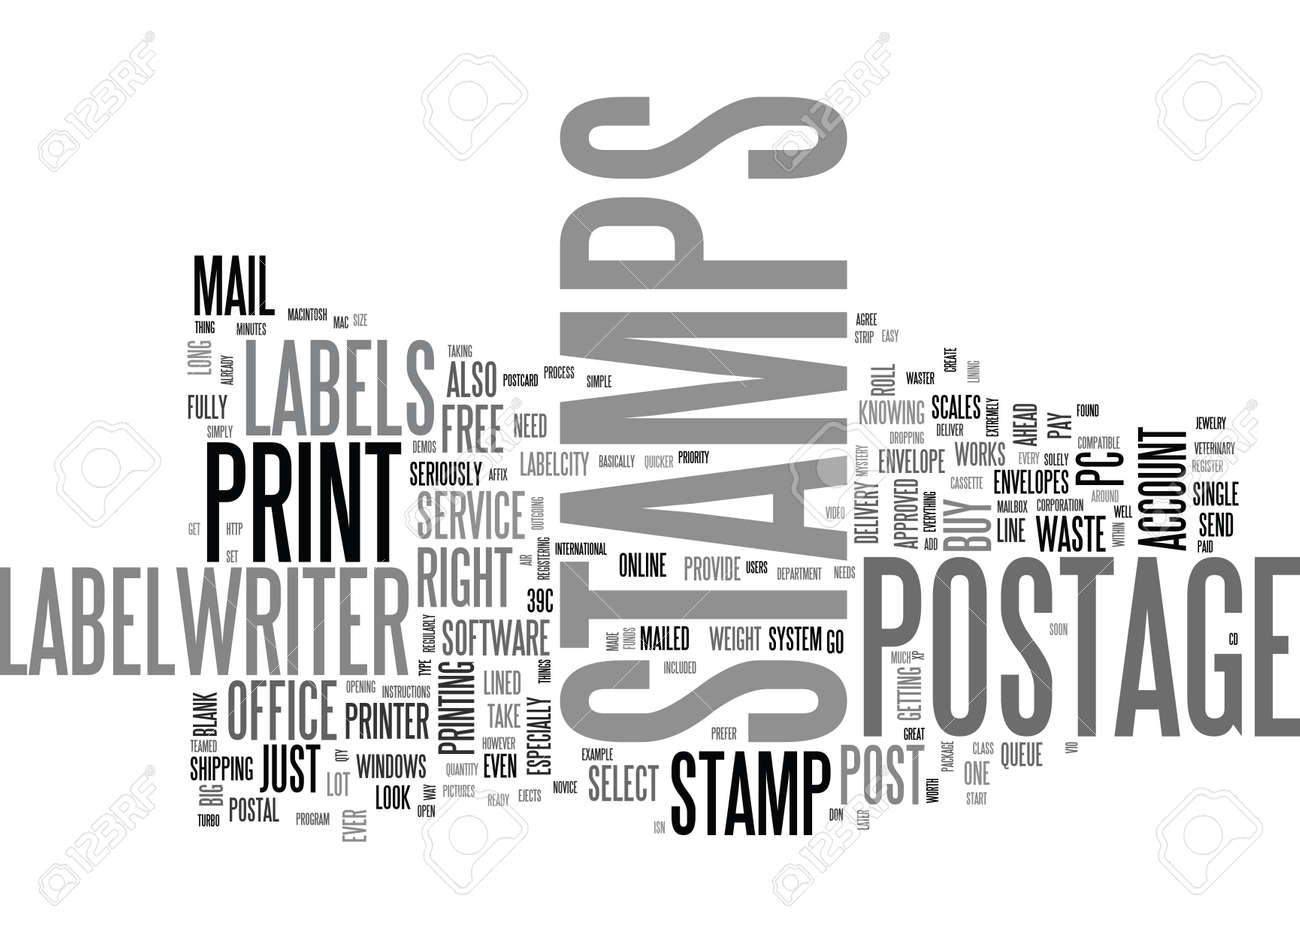 at conc stamps you when can vector text own photo office post cloud buy make postage stock your word why line up to the